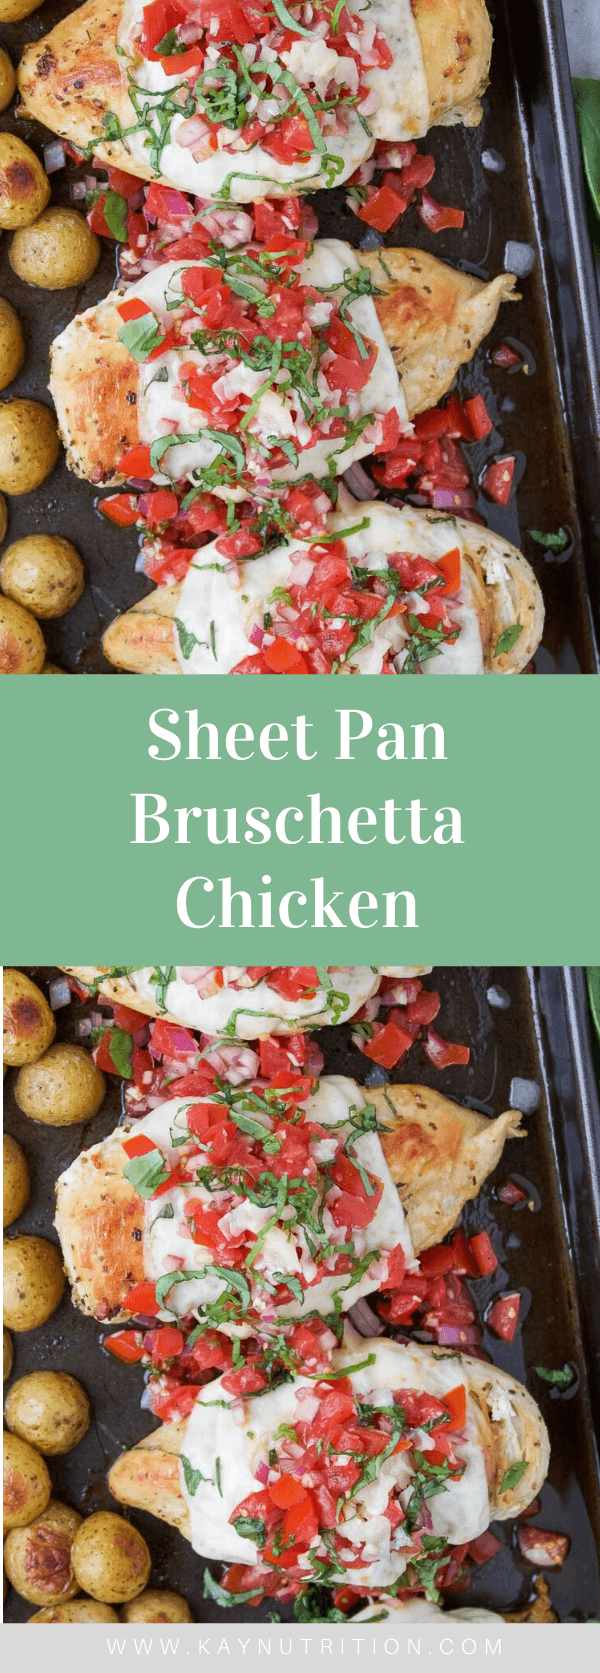 Sheet Pan Bruschetta Chicken (Baked, Healthy, Easy, Low-Carb)